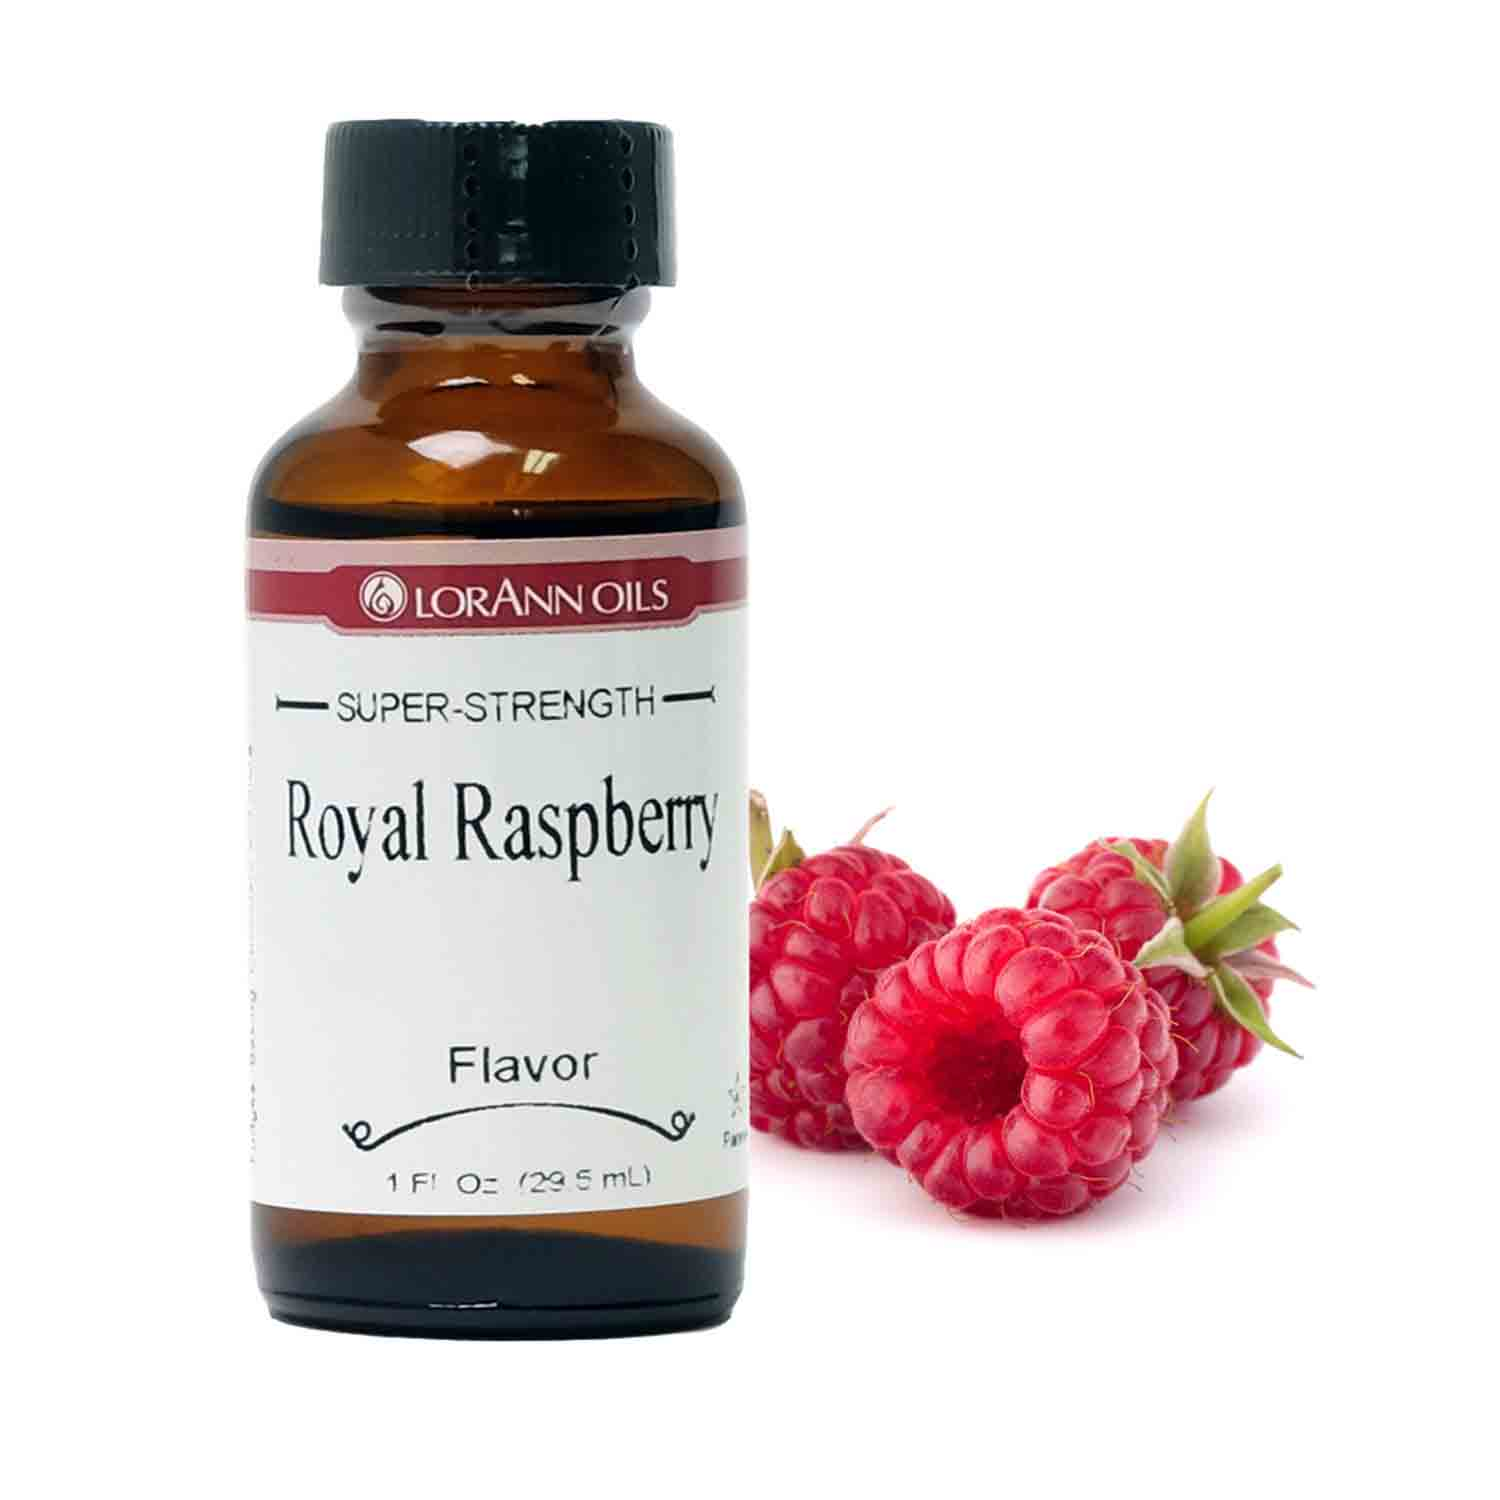 Royal Raspberry LorAnn Super-Strength Flavor